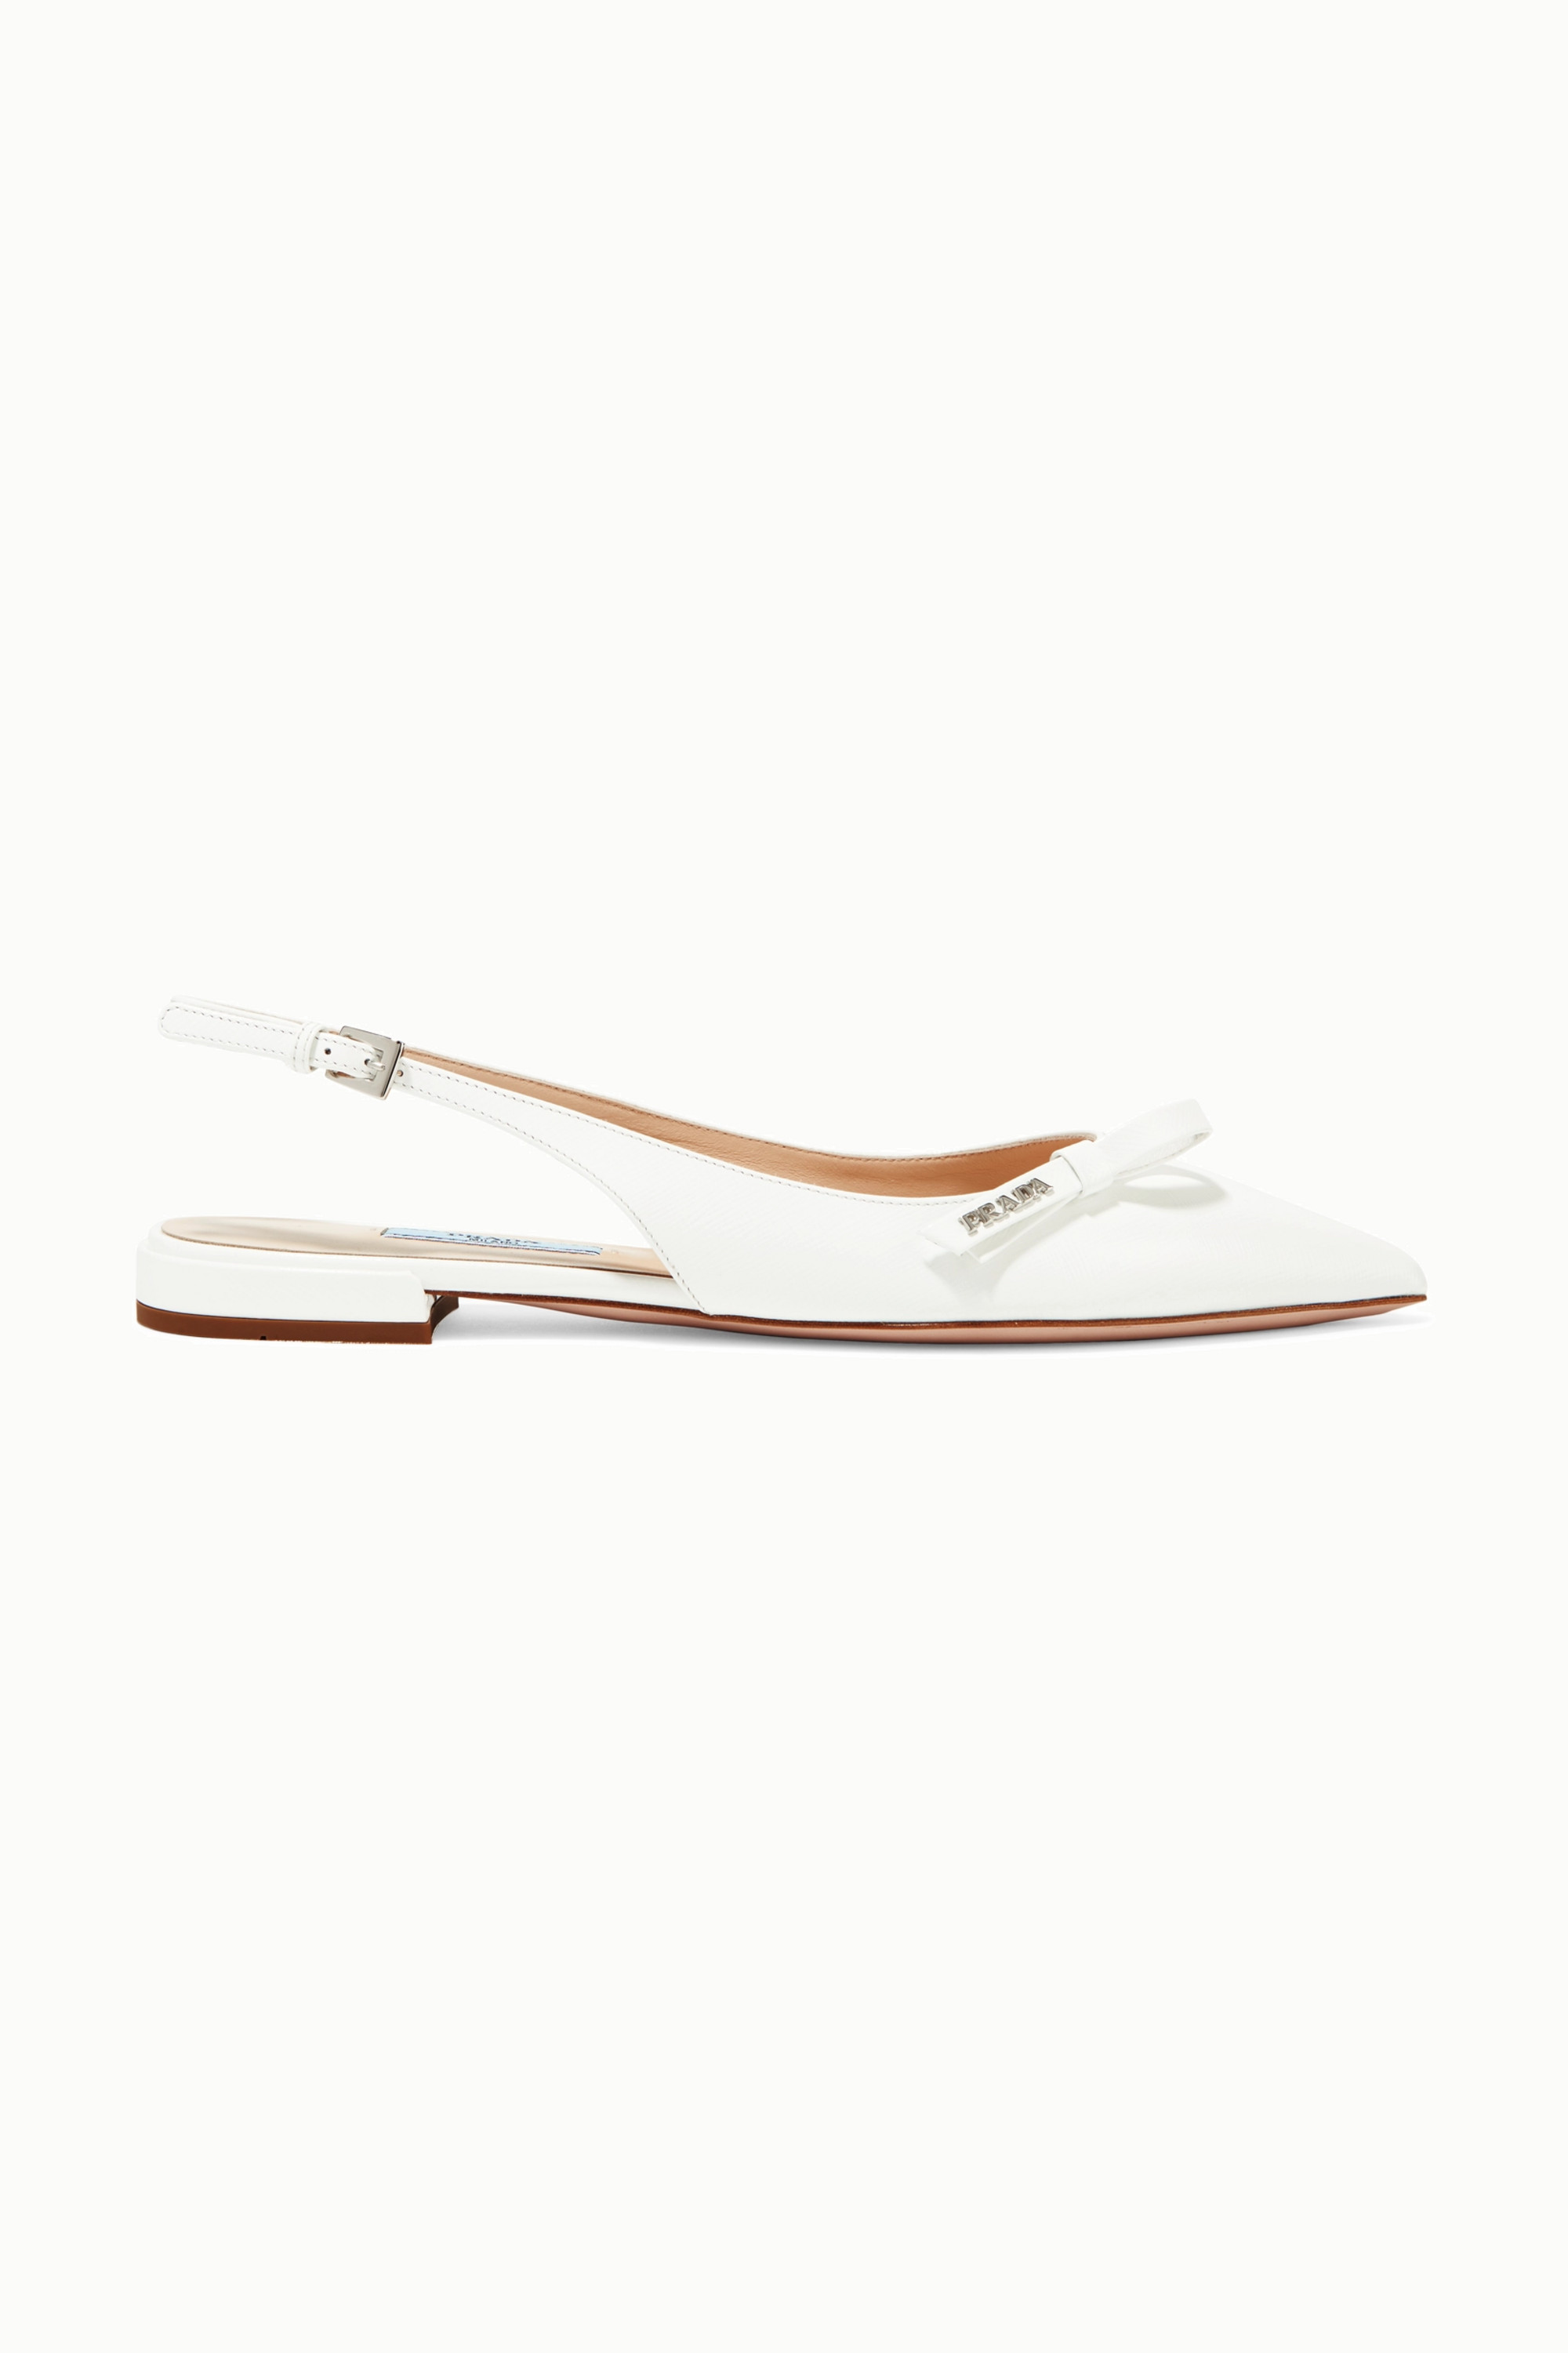 White Textured-leather slingback flats